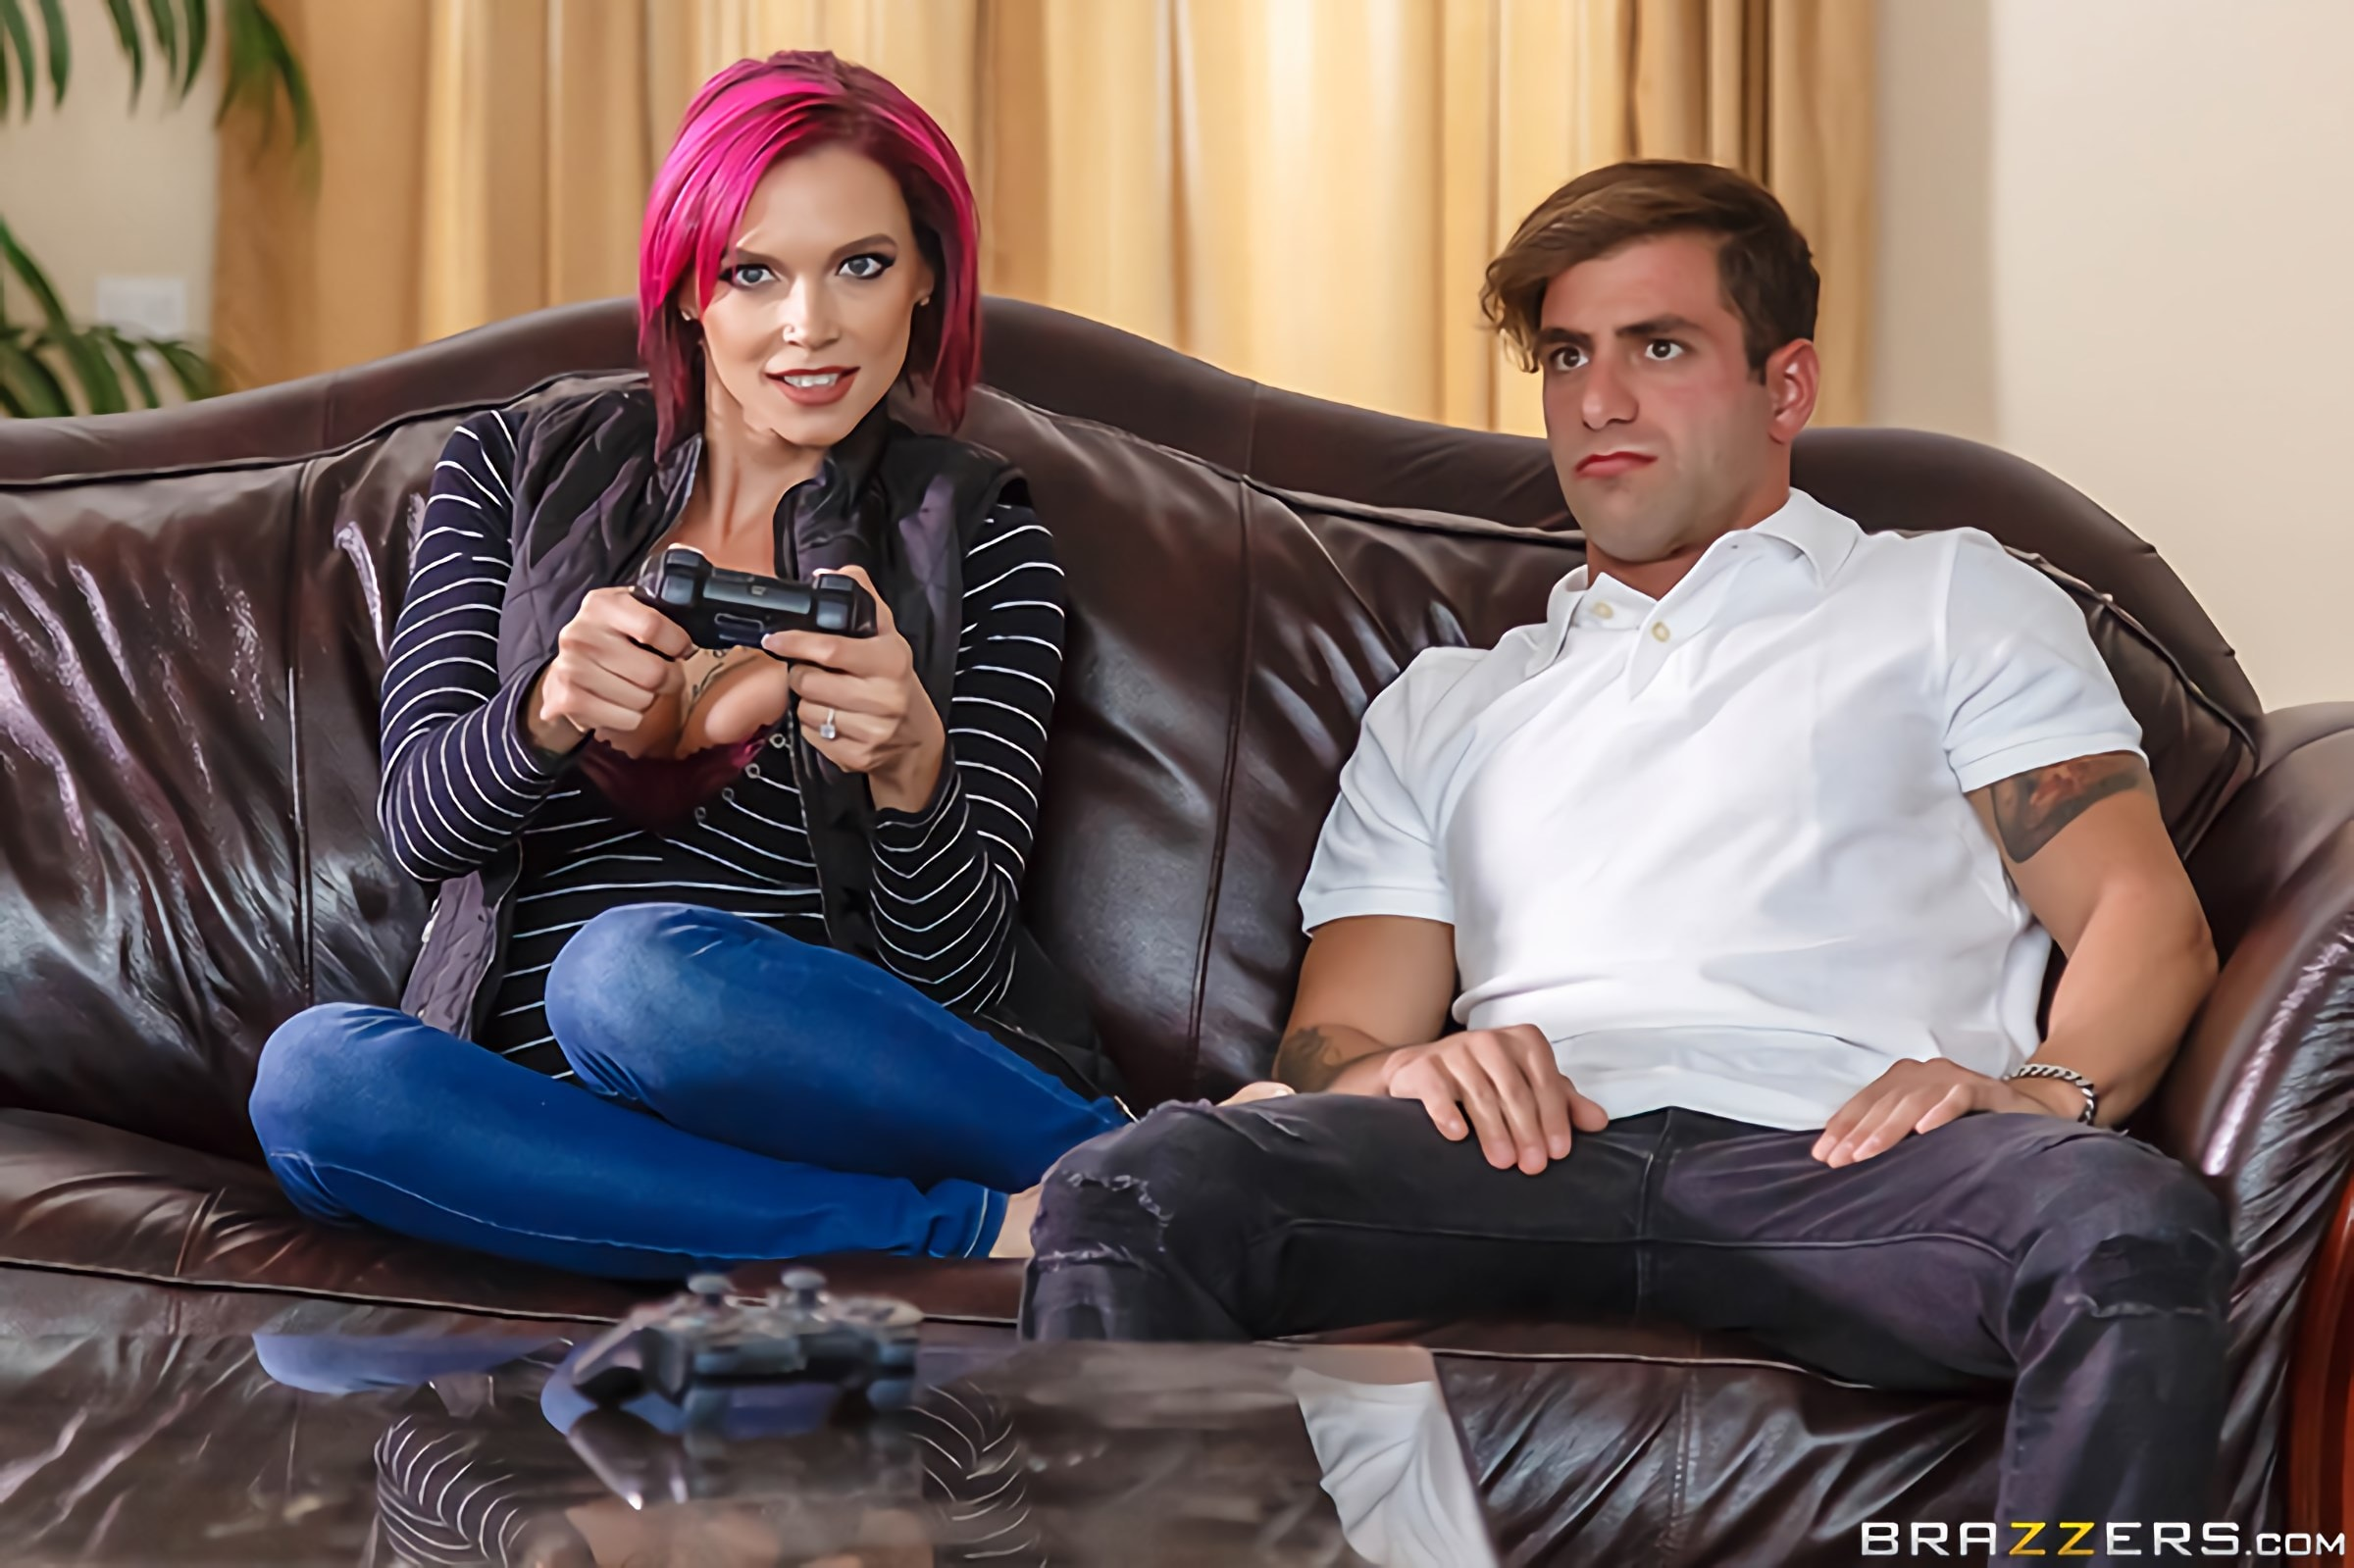 Brazzers 'Putting Her Feet Up' starring Anna Bell Peaks (photo 1)